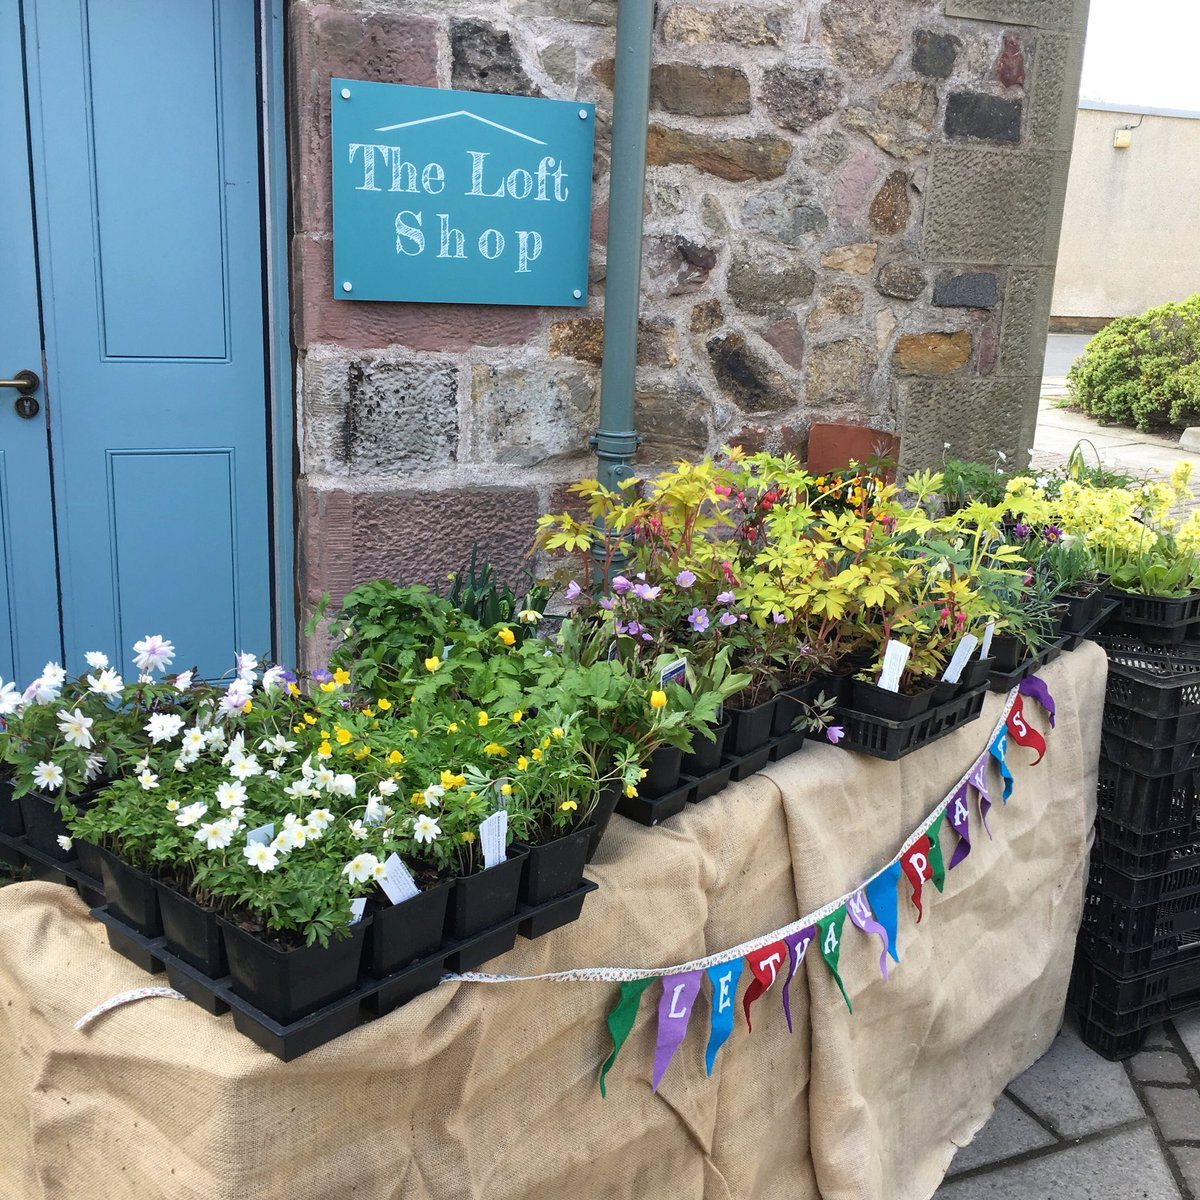 Loft caf bakery on twitter chelsea silver medal winner caroline loft caf bakery on twitter chelsea silver medal winner caroline from letham plants will have a stall in our courtyard again selling her perennials mightylinksfo